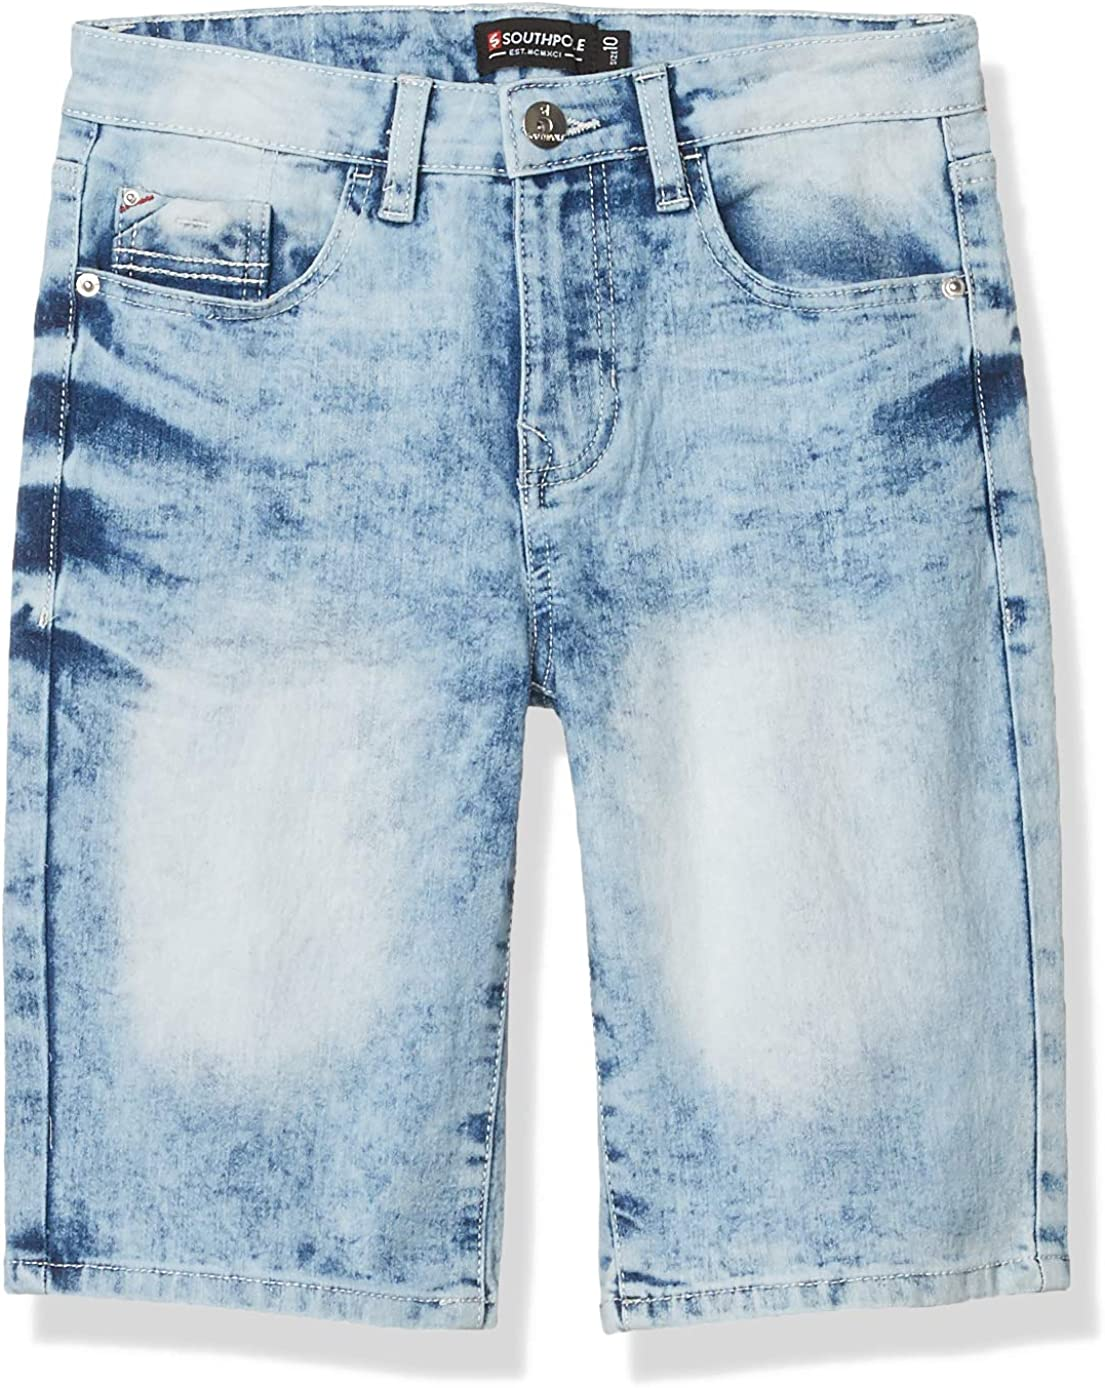 Southpole Boys Denim Shorts